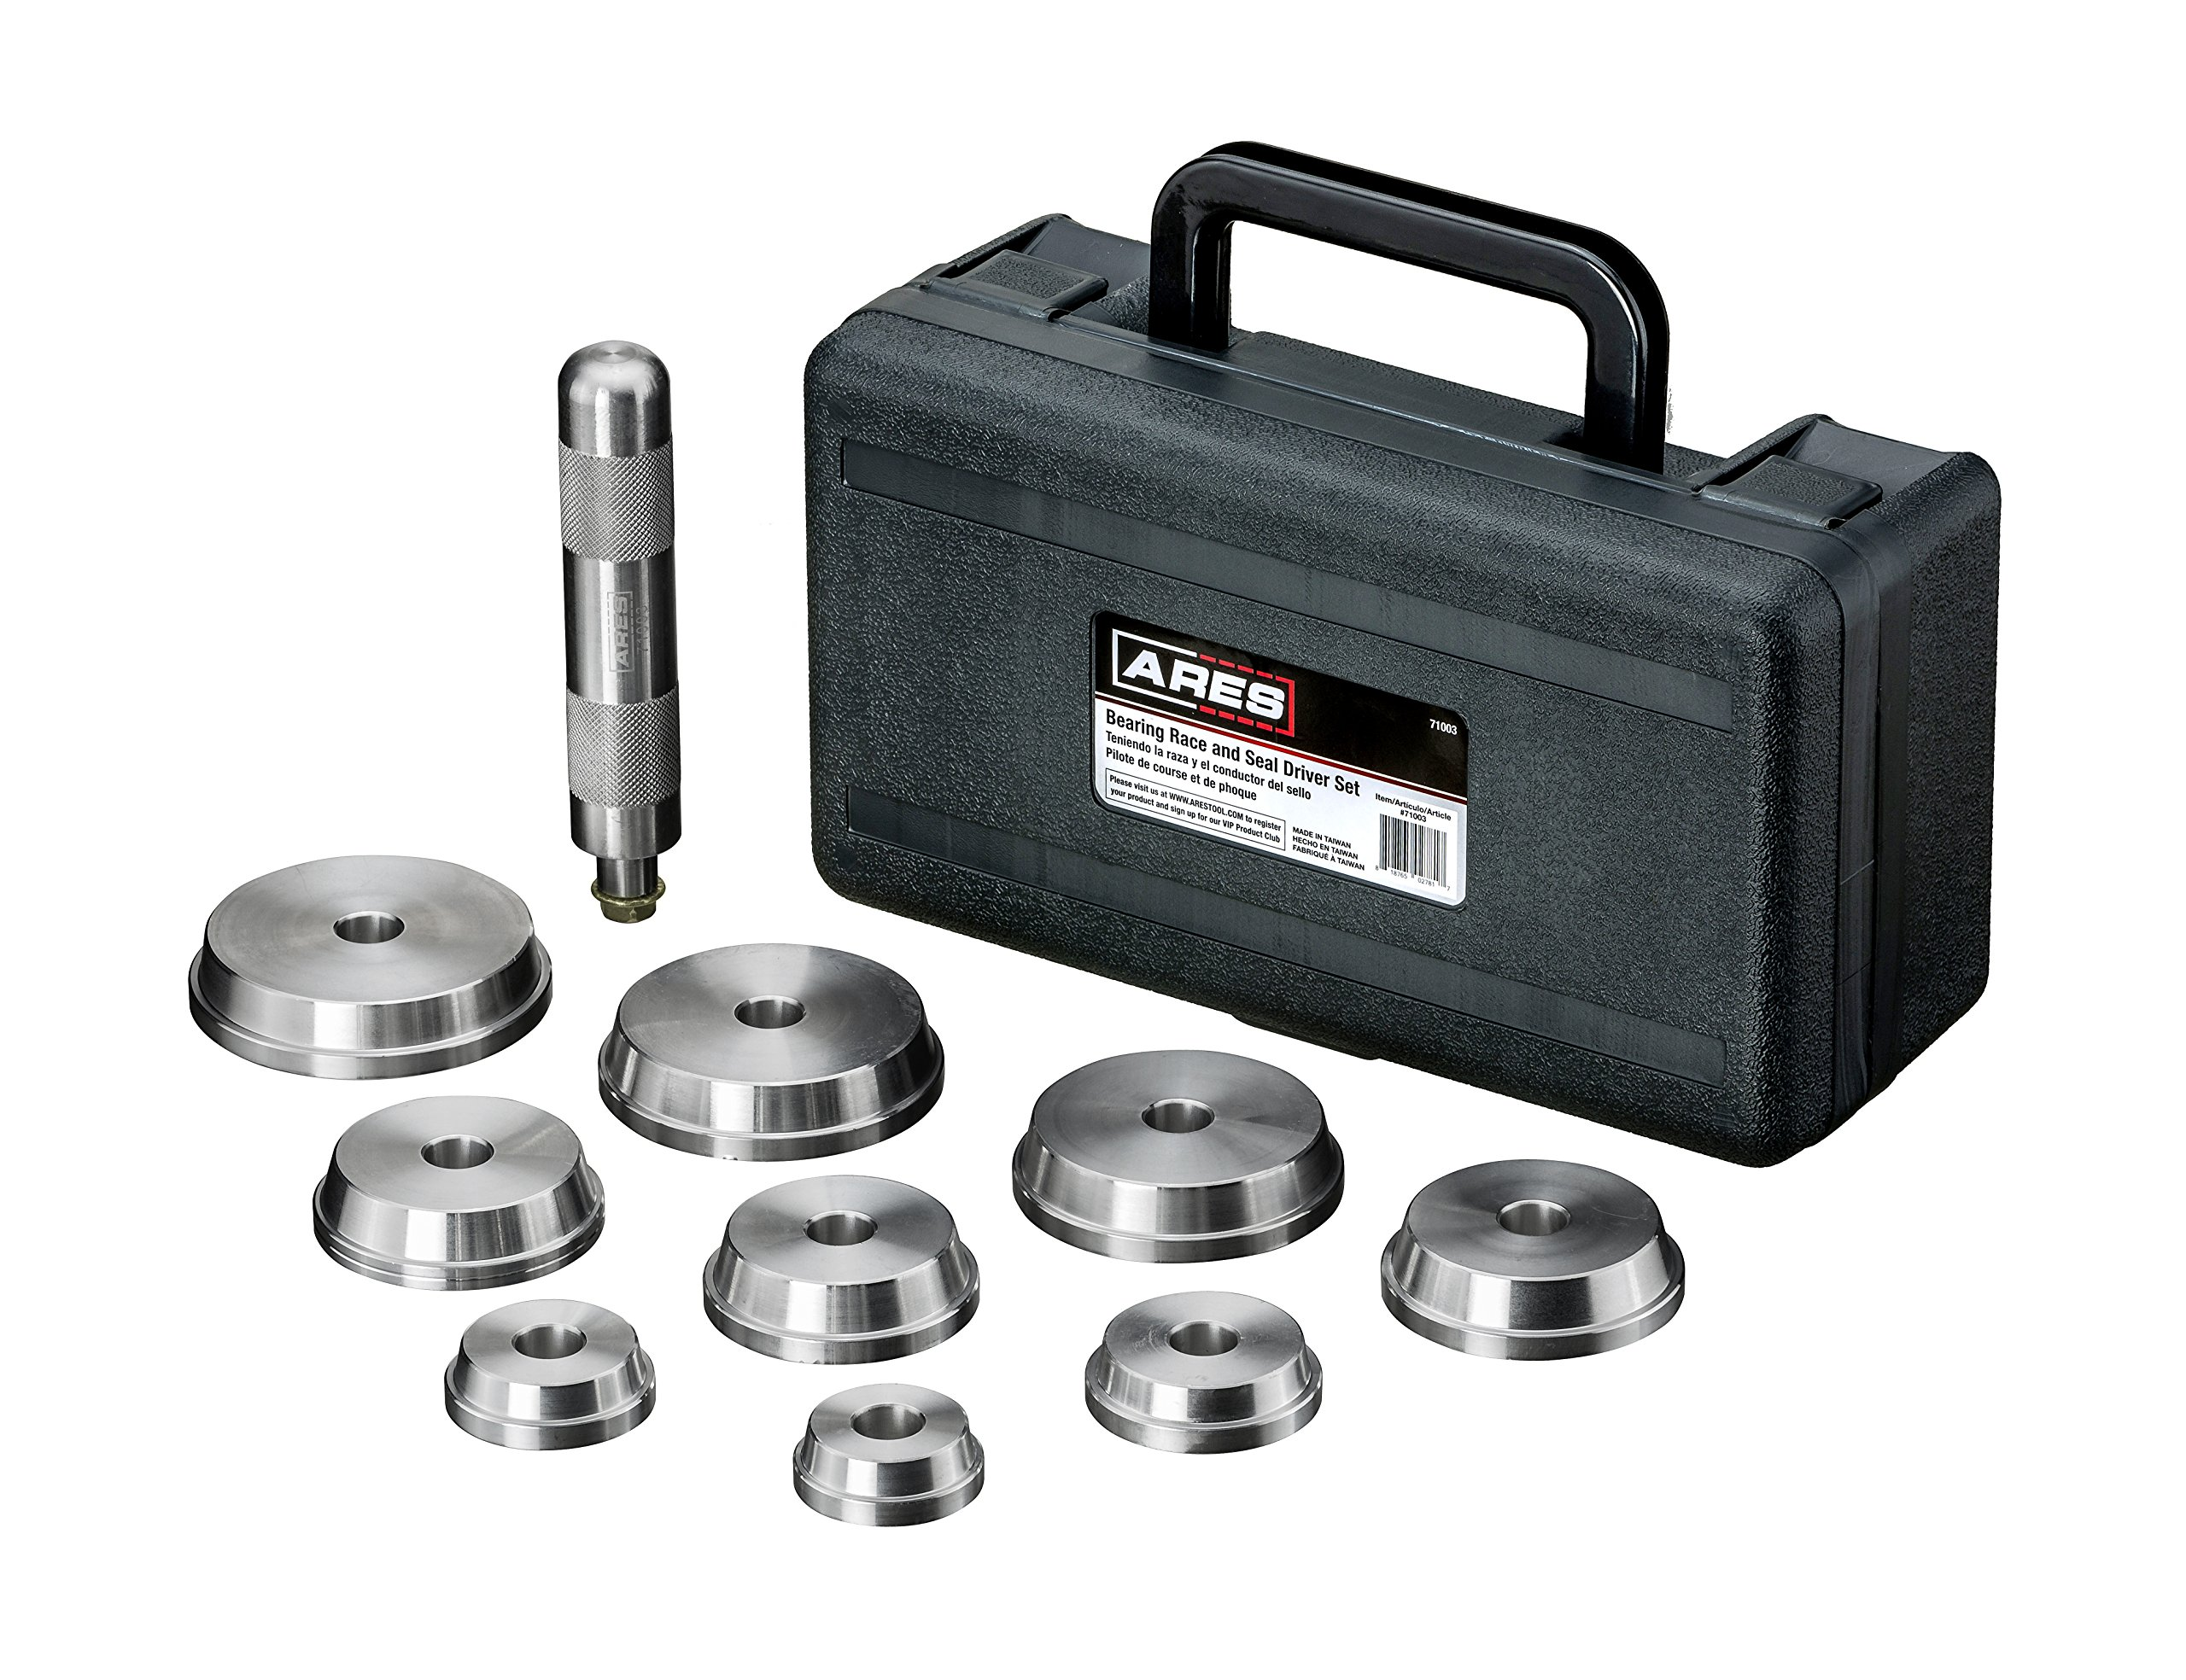 ARES 71003 | Bearing Race and Seal Driver Set | Universal Kit Allows for Easy Race and Seal Installation Storage Case Included